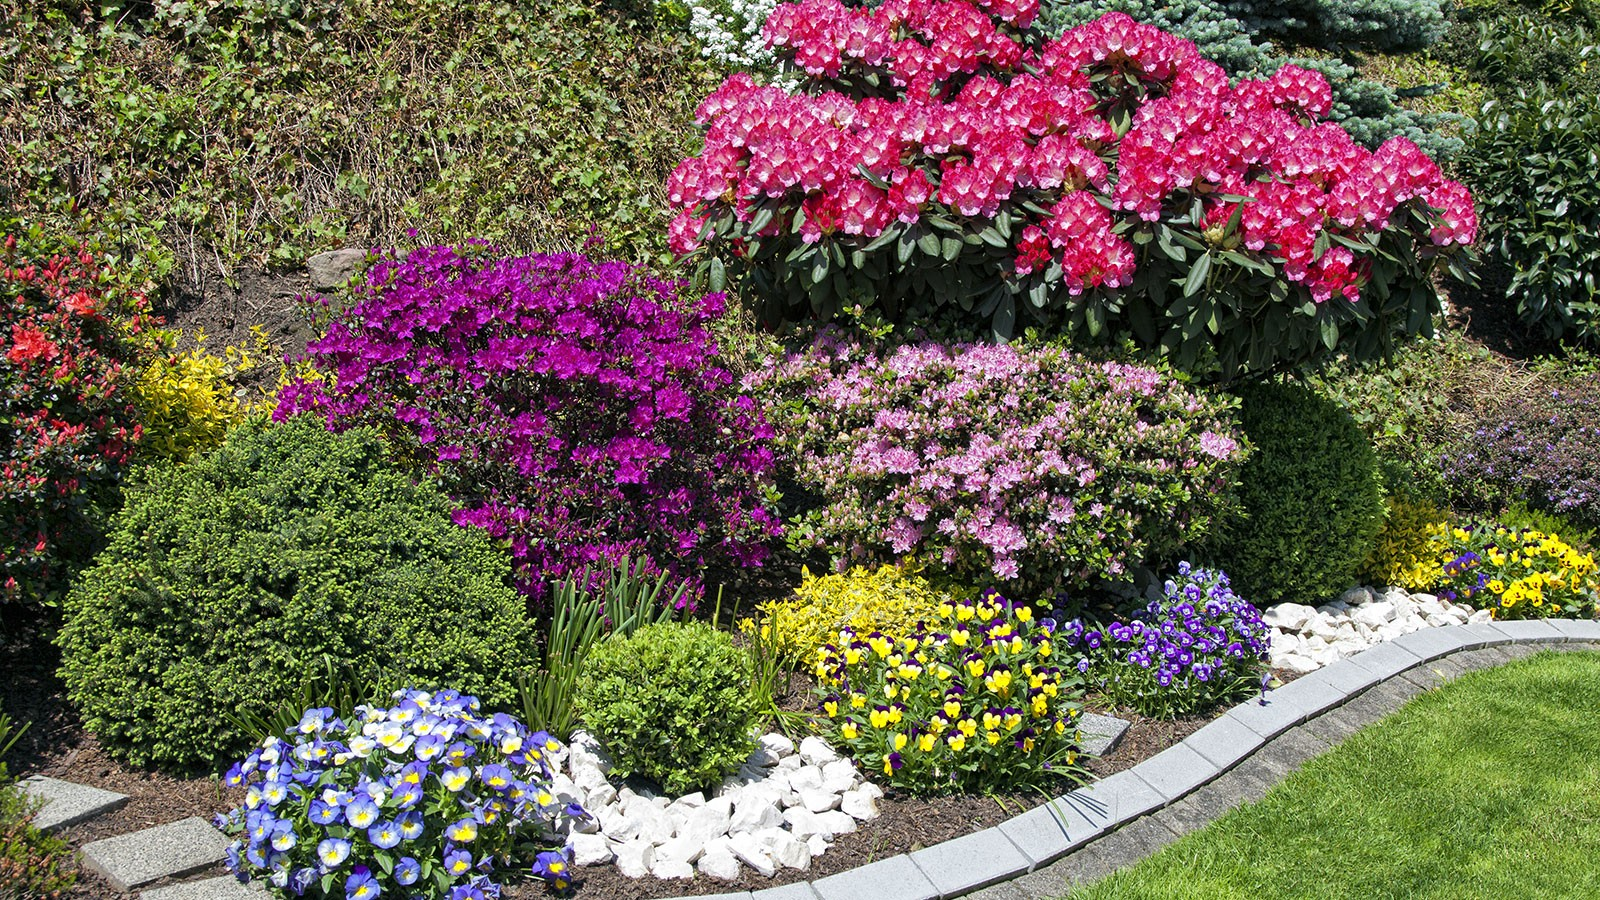 flower garden with perennials.